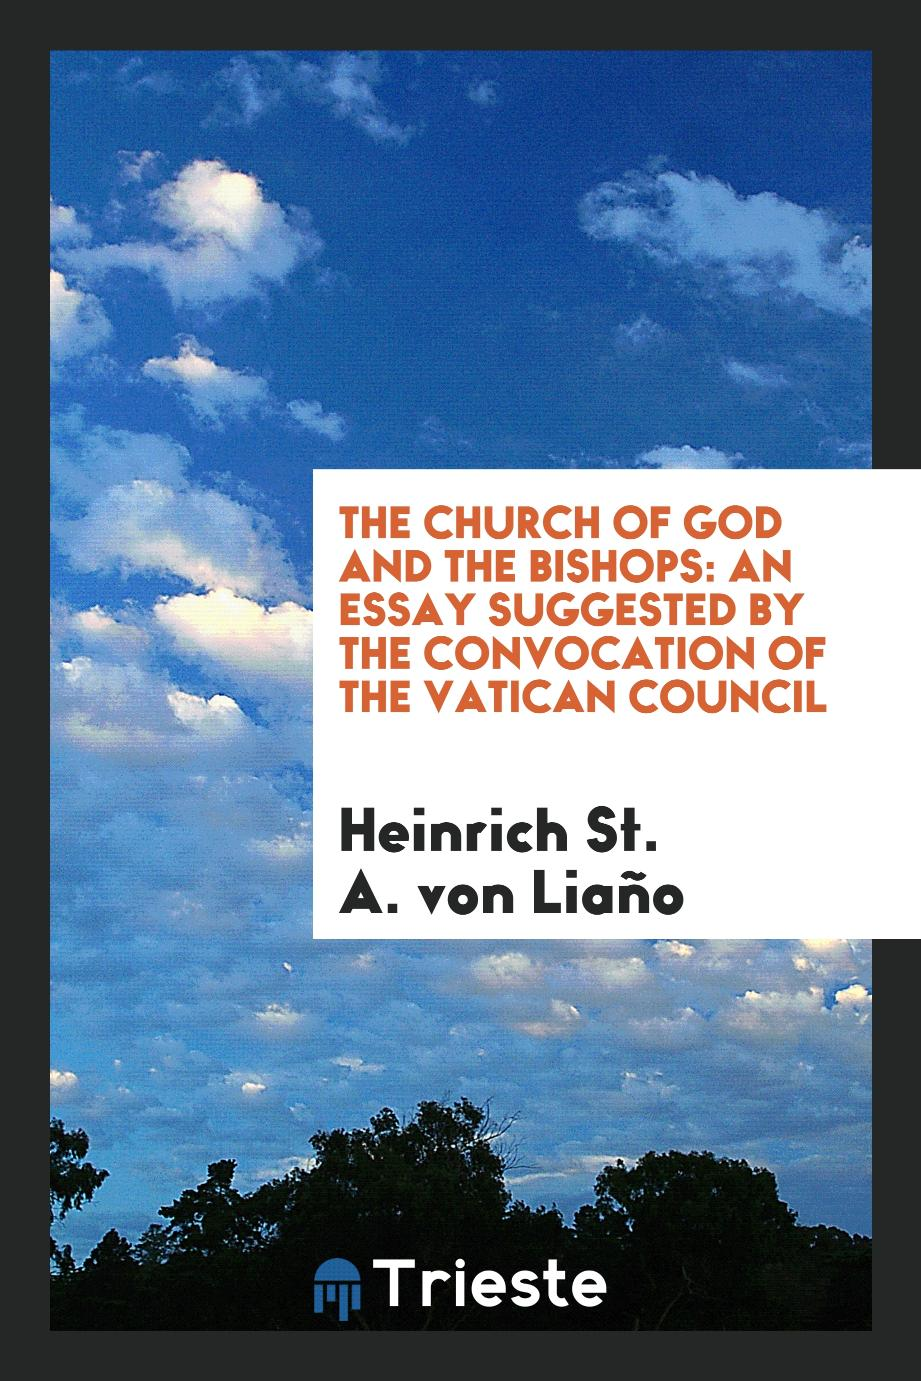 The church of God and the bishops: an essay suggested by the convocation of the Vatican Council